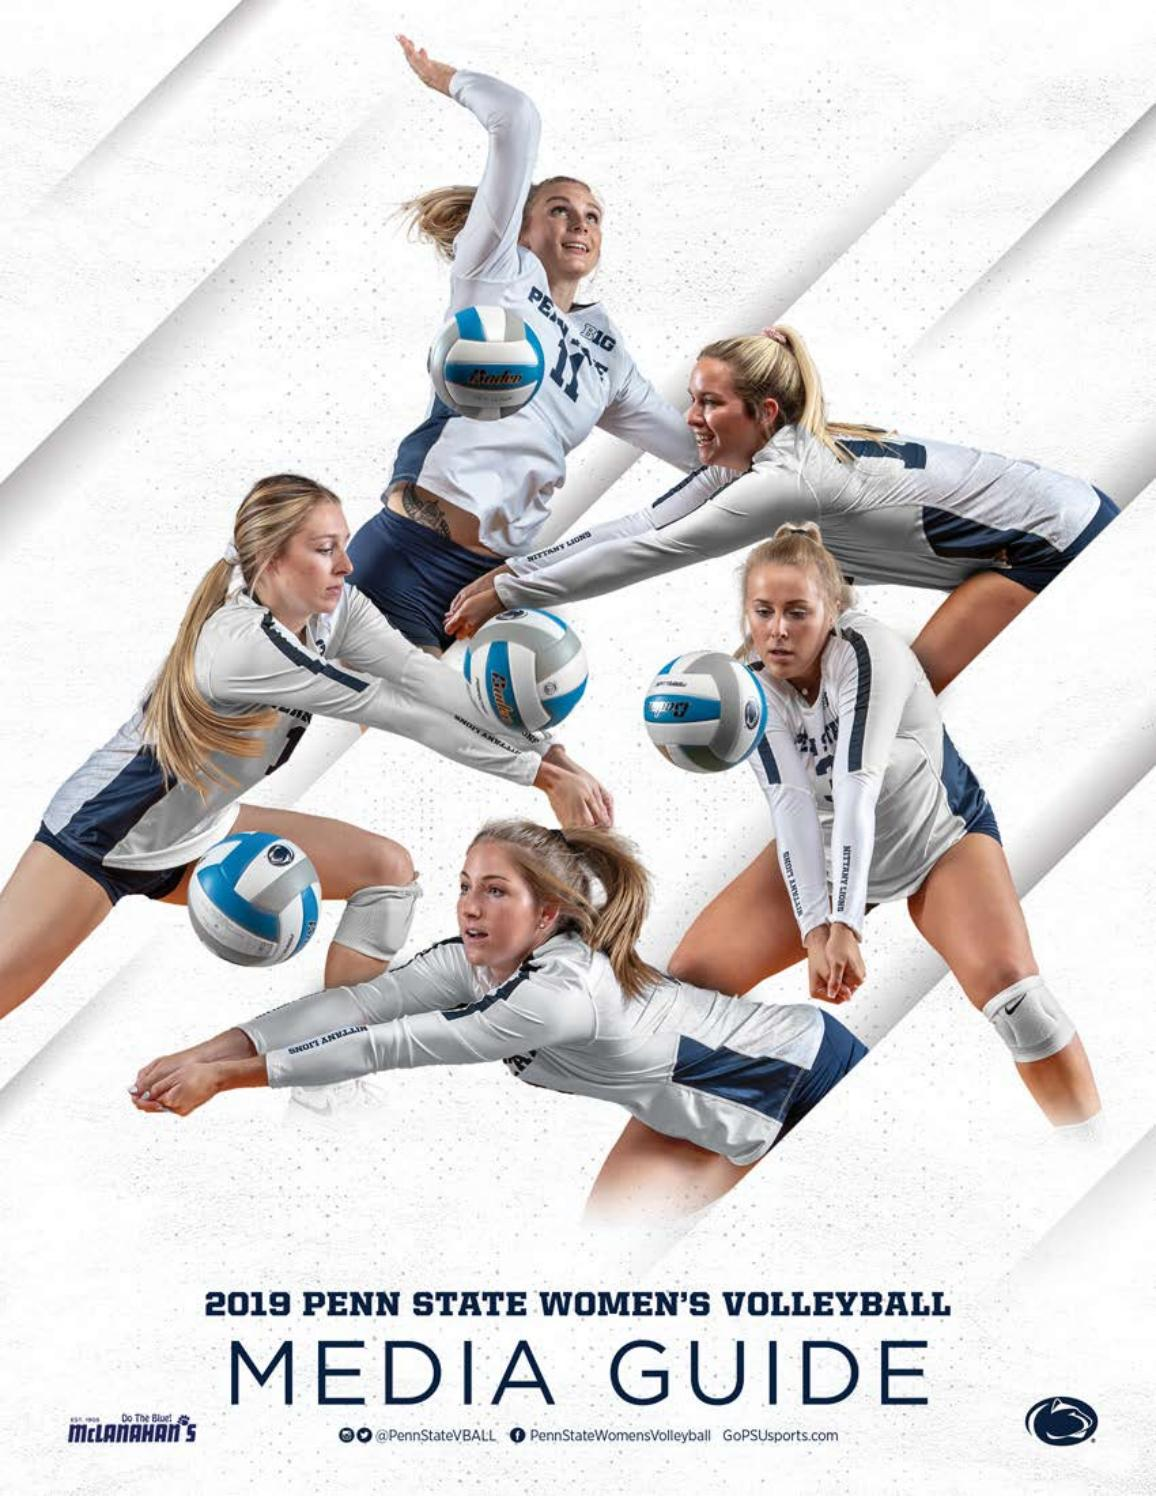 2019 Penn State Women S Volleyball Media Guide By Penn State Athletics Issuu